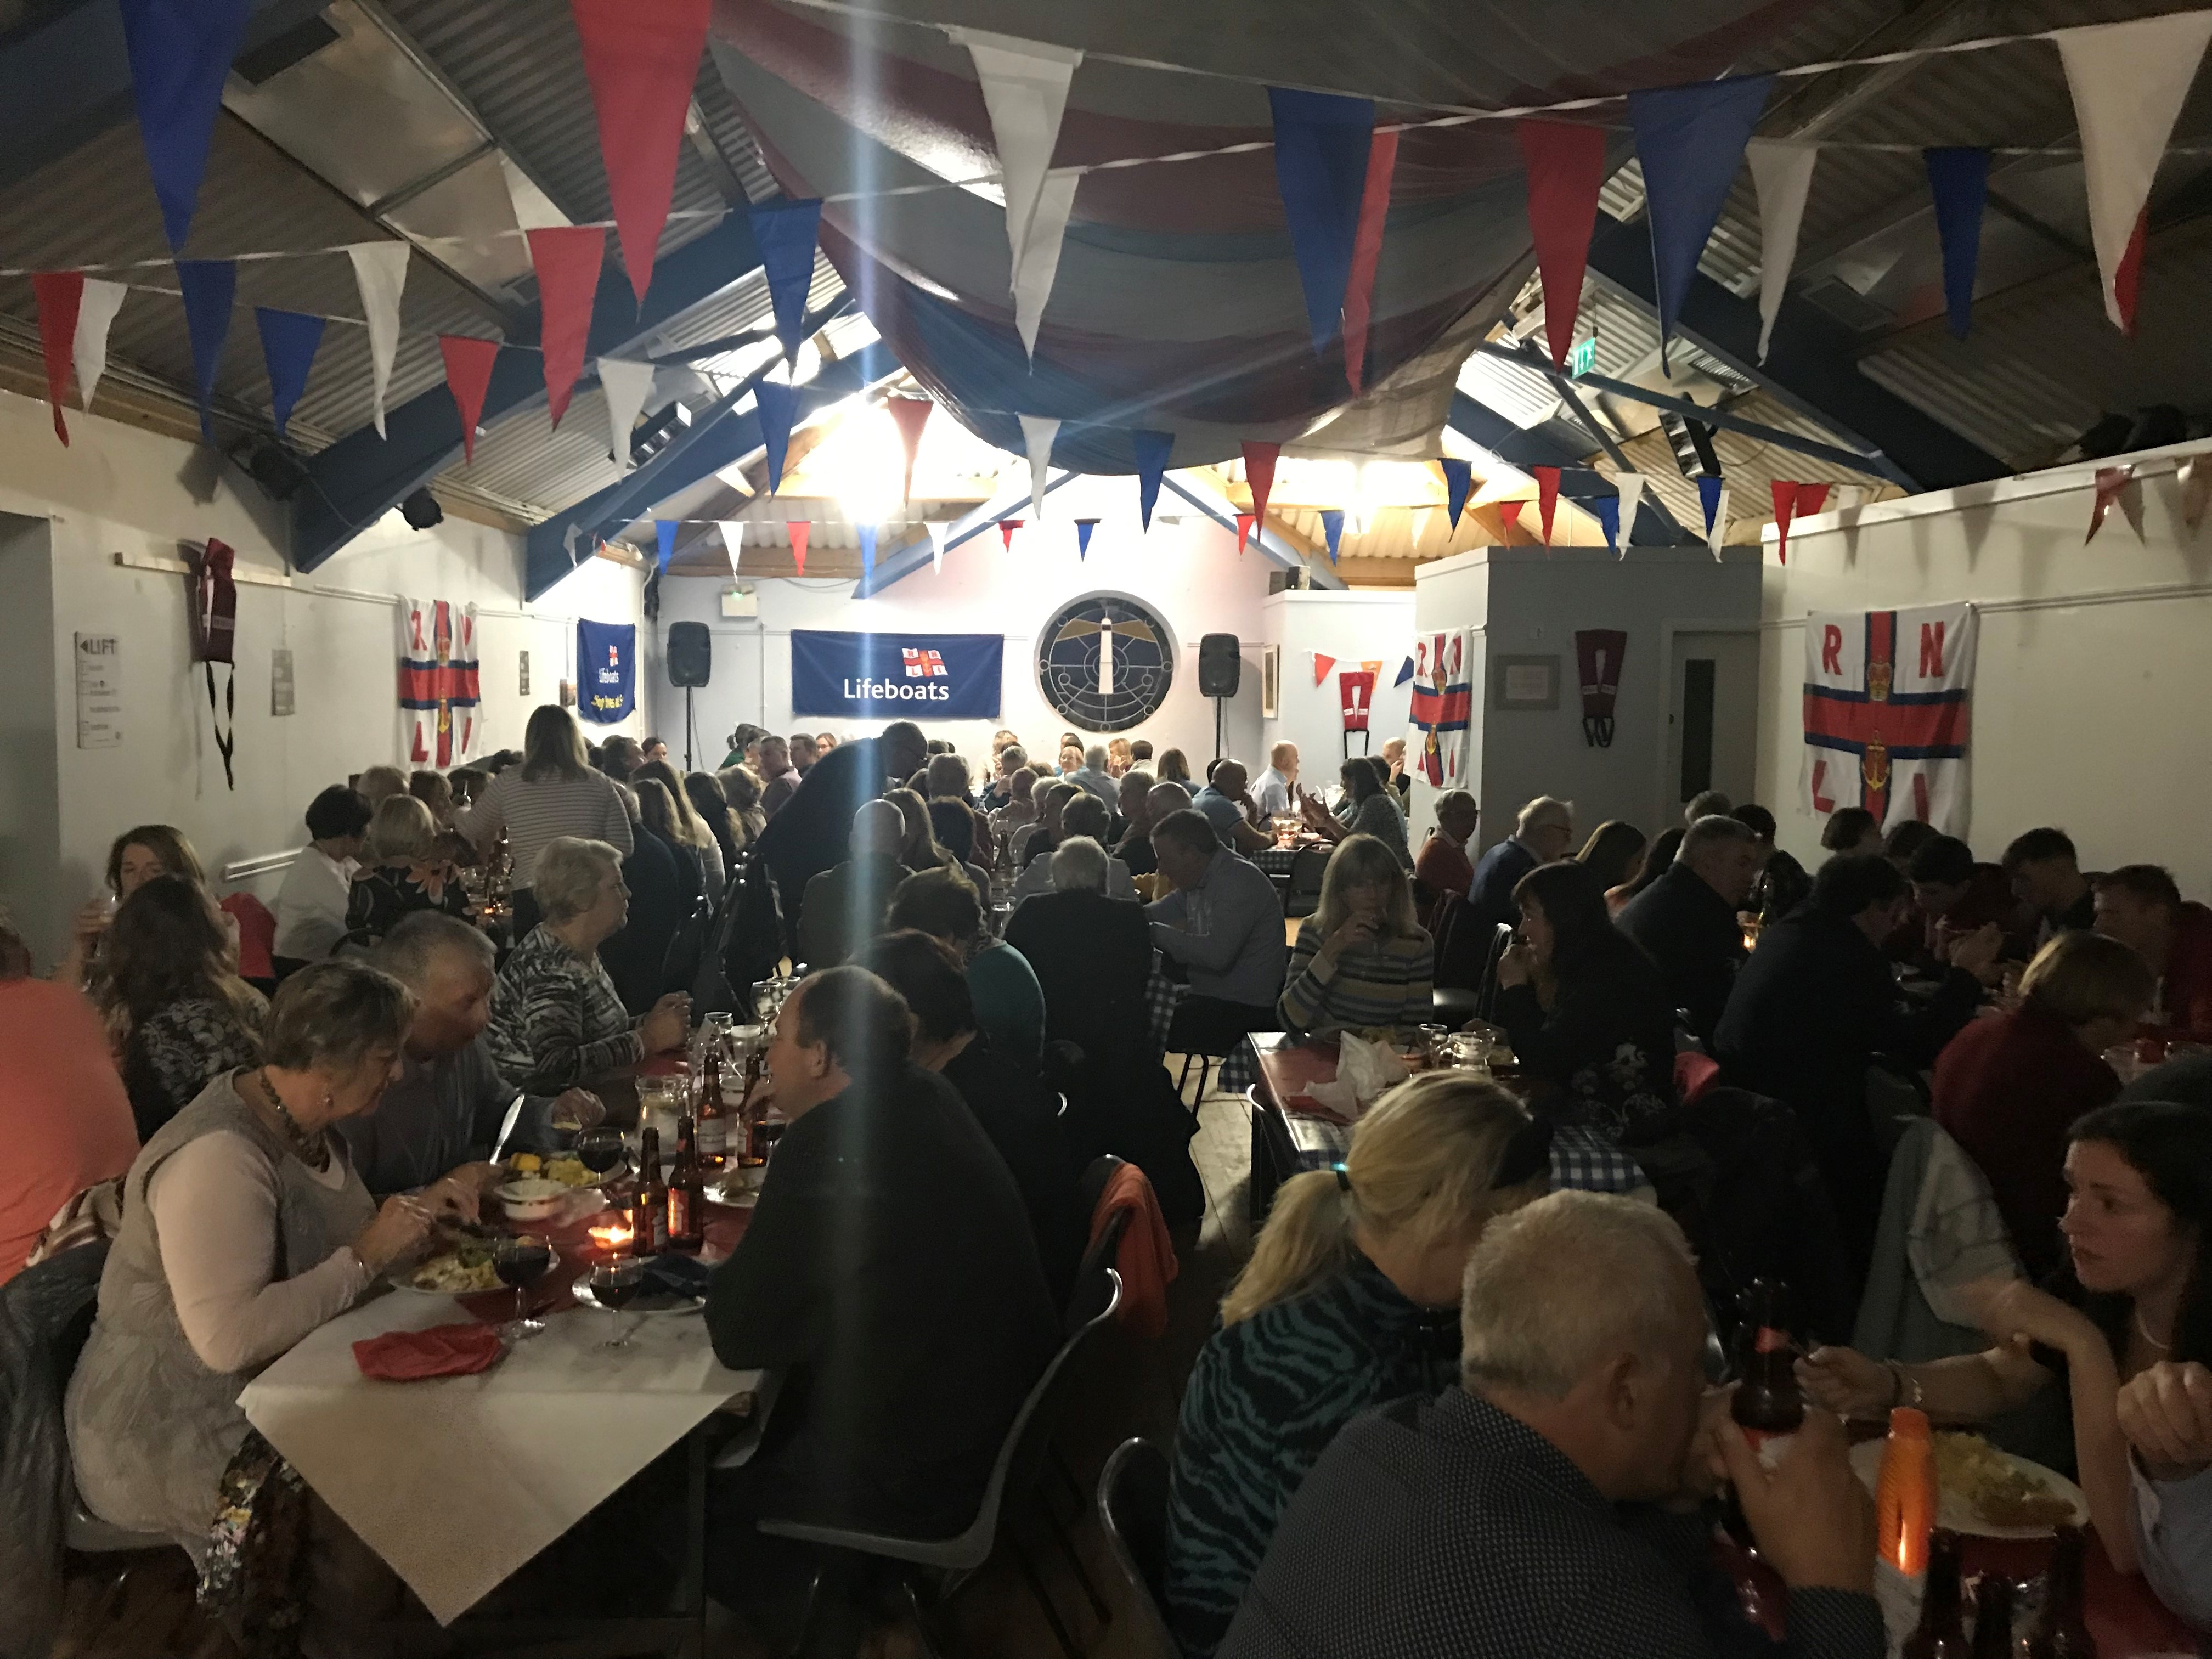 The crowd at Stella Maris Centre for the RNLI Fish Supper